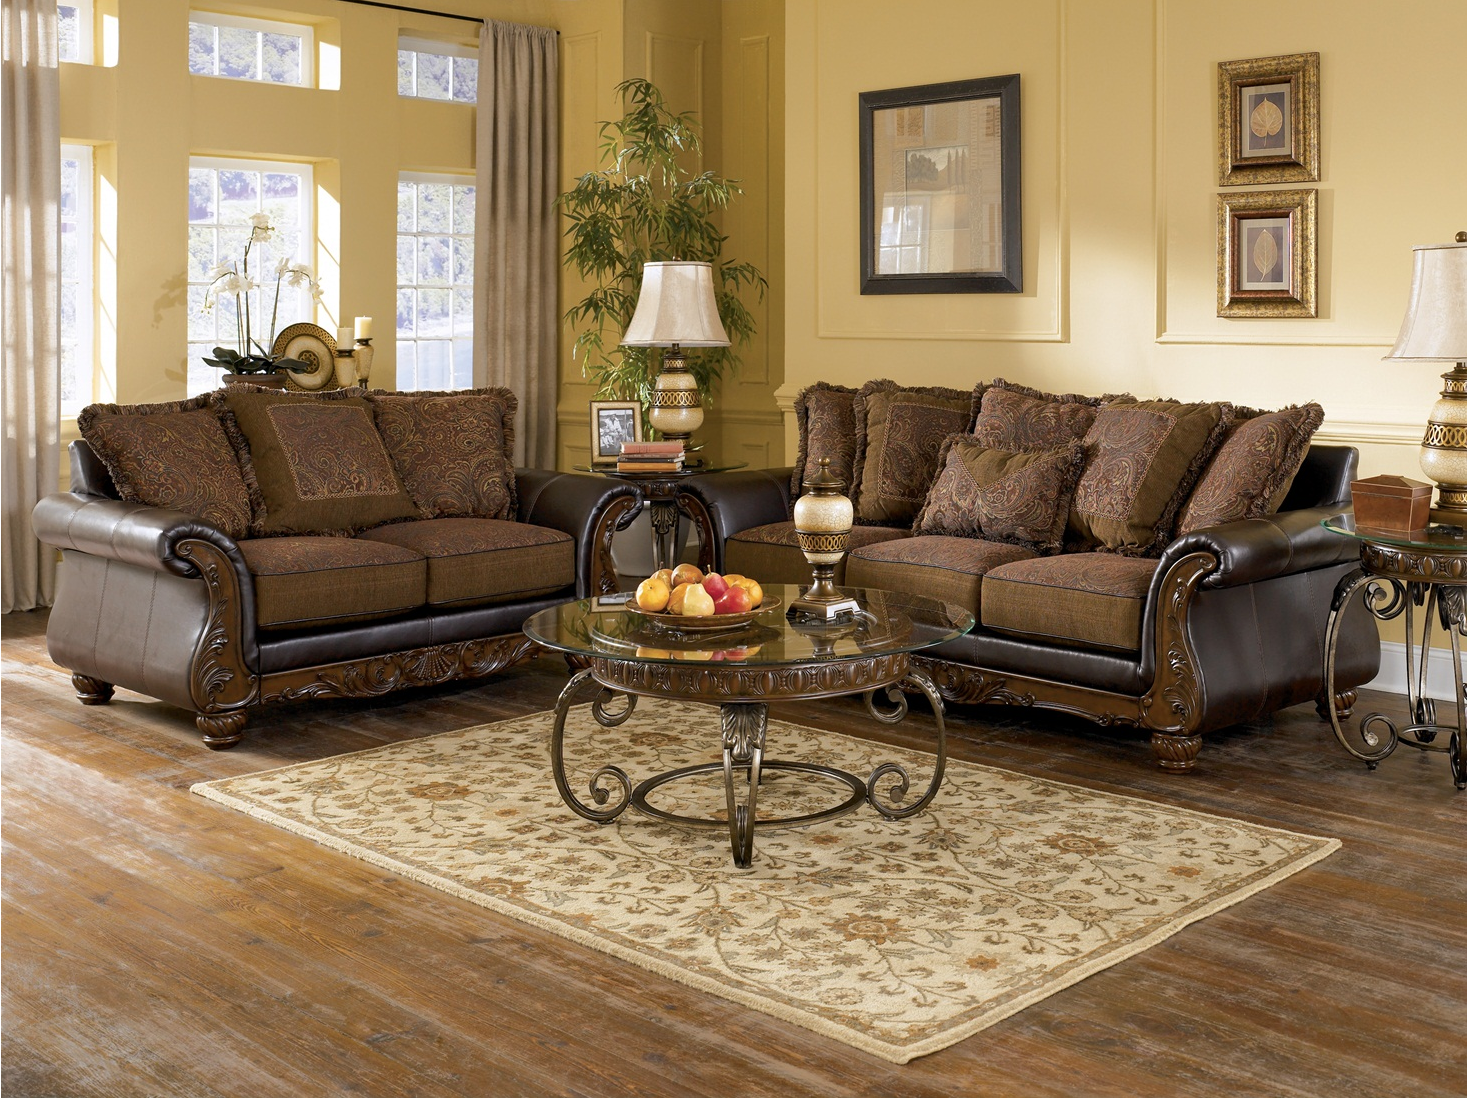 wilmington traditional living room furniture set by ashley. Black Bedroom Furniture Sets. Home Design Ideas